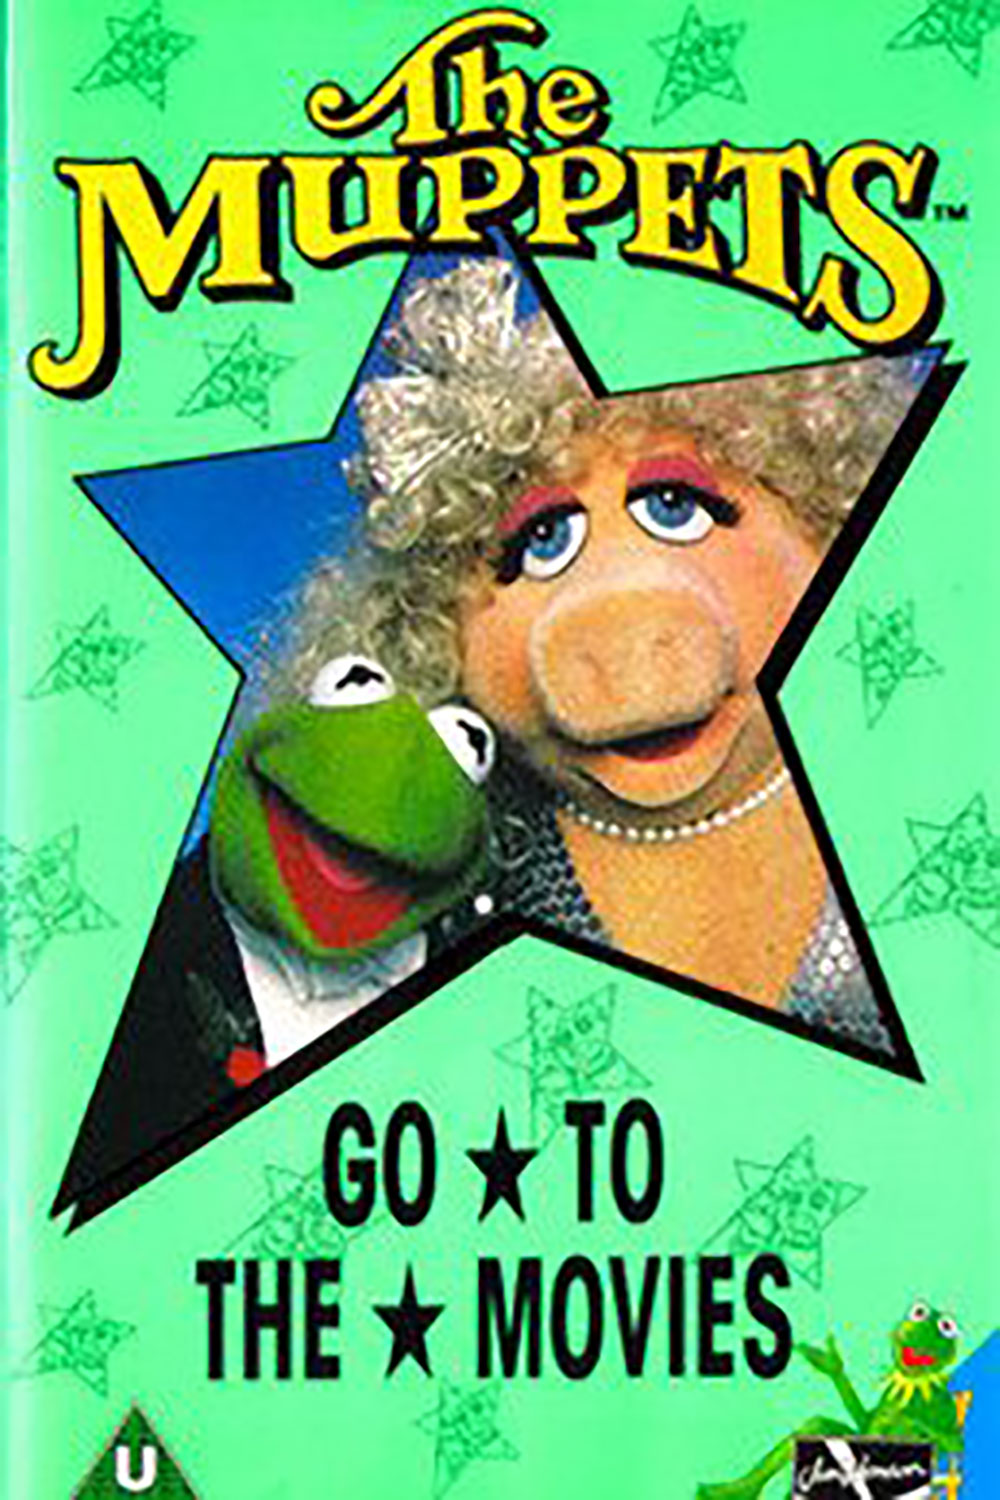 affiche poster muppets go movies disney